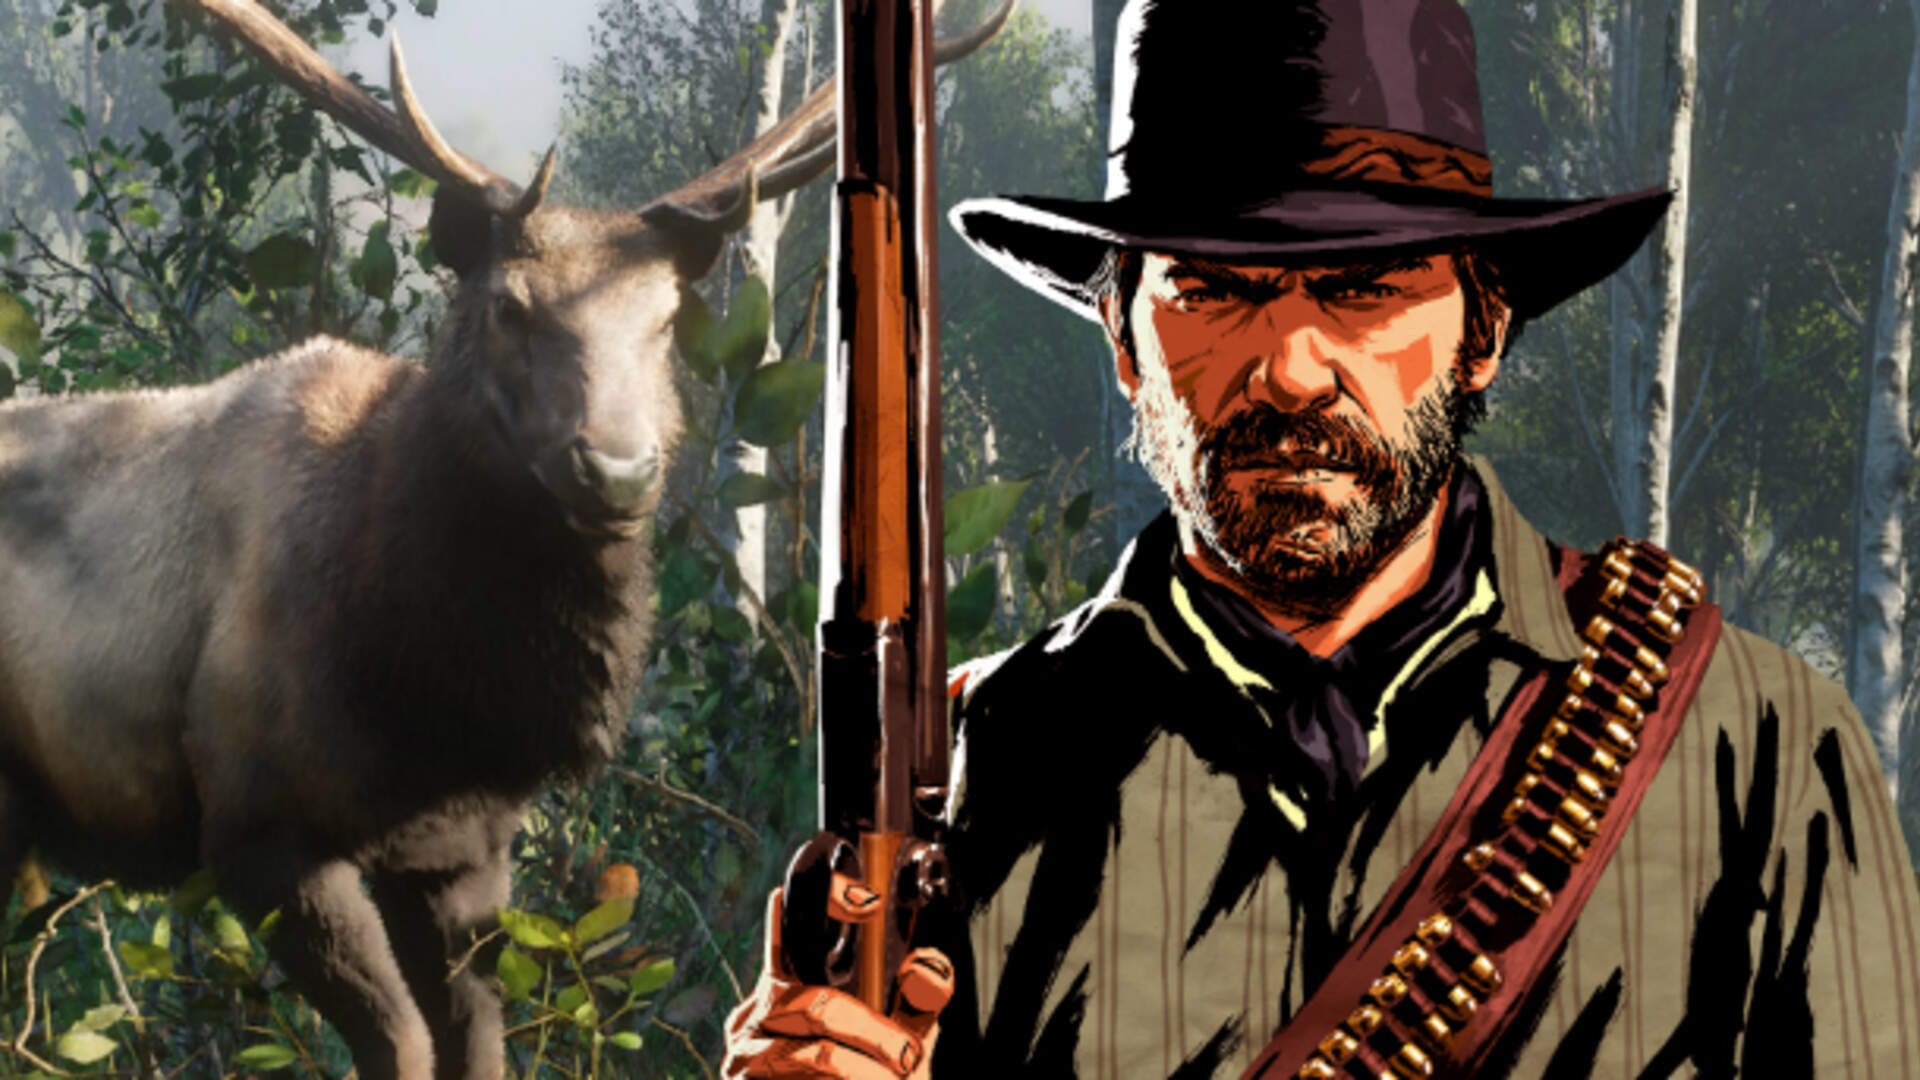 Which Animal is the Biggest Asshole in Red Dead Redemption 2? The Deadliest Animals in RDR2